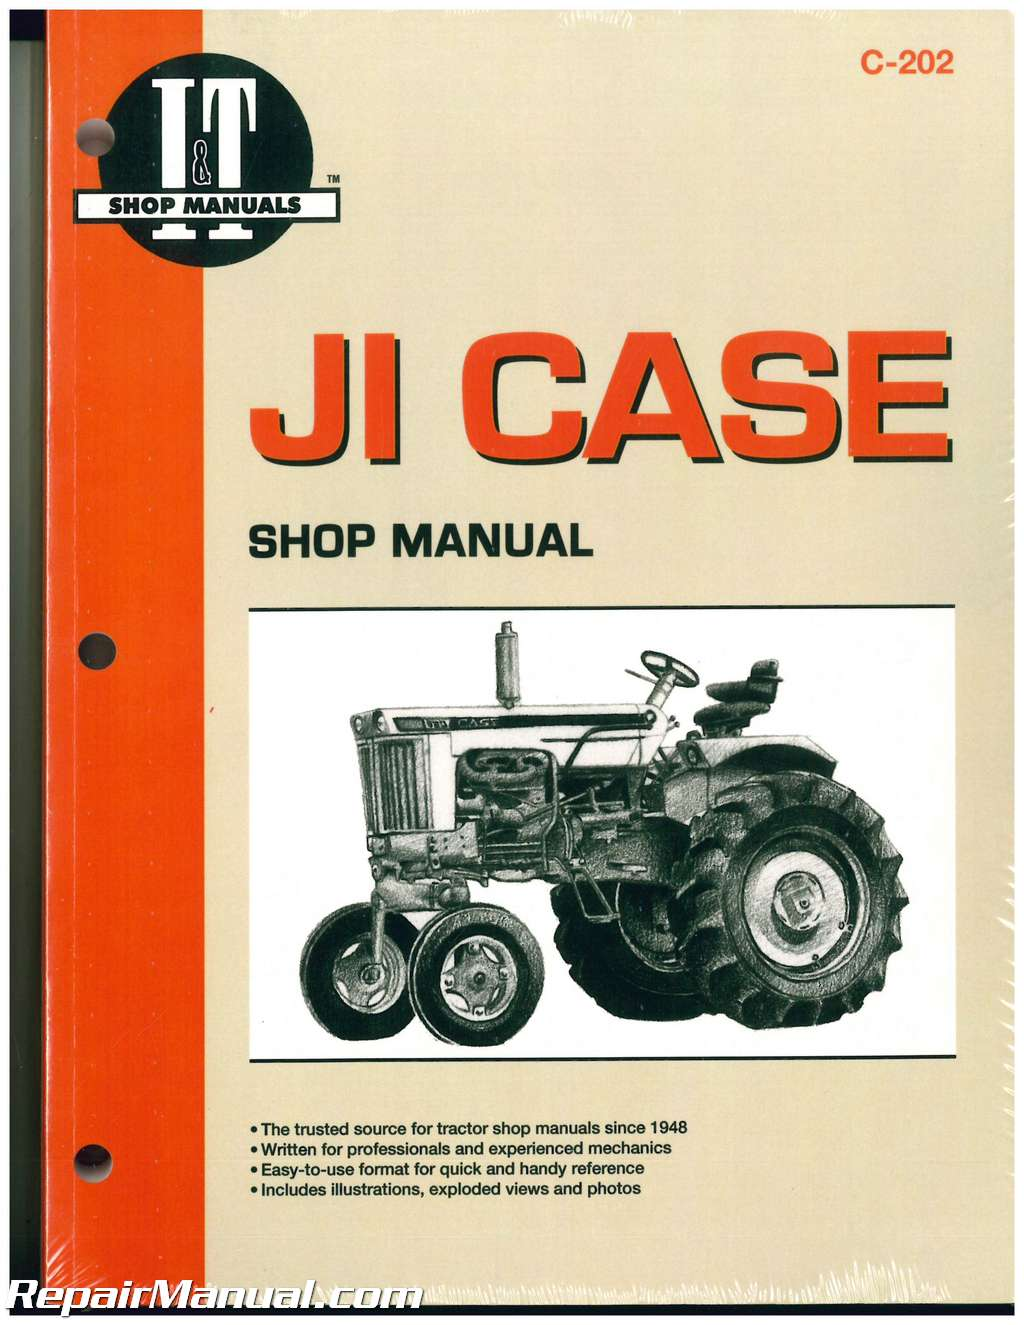 ji case david brown tractor repair manual 430 440 470 500 530 540 rh repairmanual com shenniu tractor repair manual tractor service repair manuals